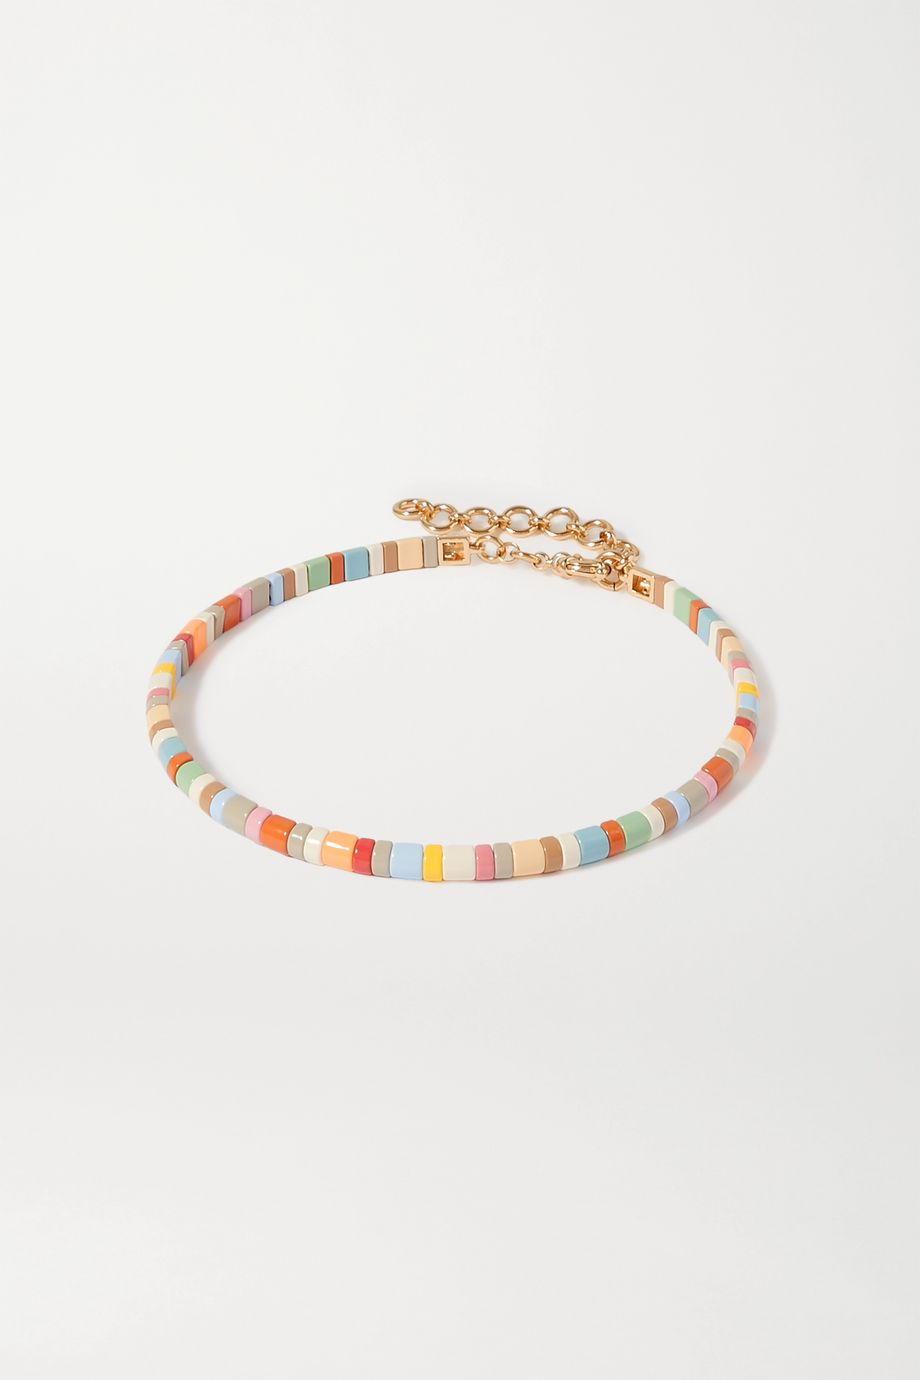 Roxanne Assoulin Enamel and gold-tone choker